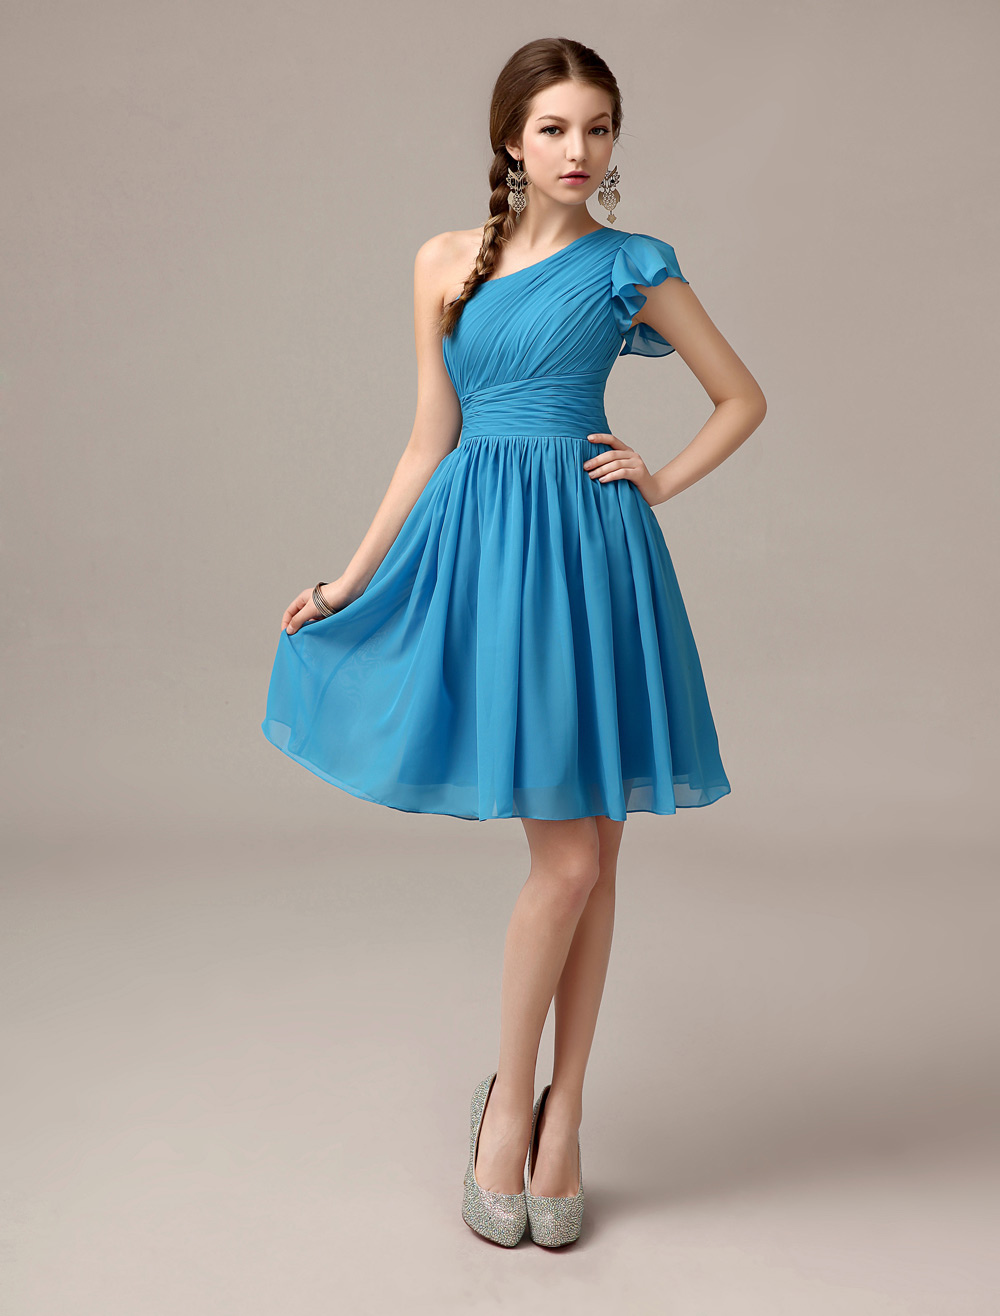 Knee-Length Ocean Blue A-line Ruffles Chiffon Bridesmaid Dress with One-Shoulder